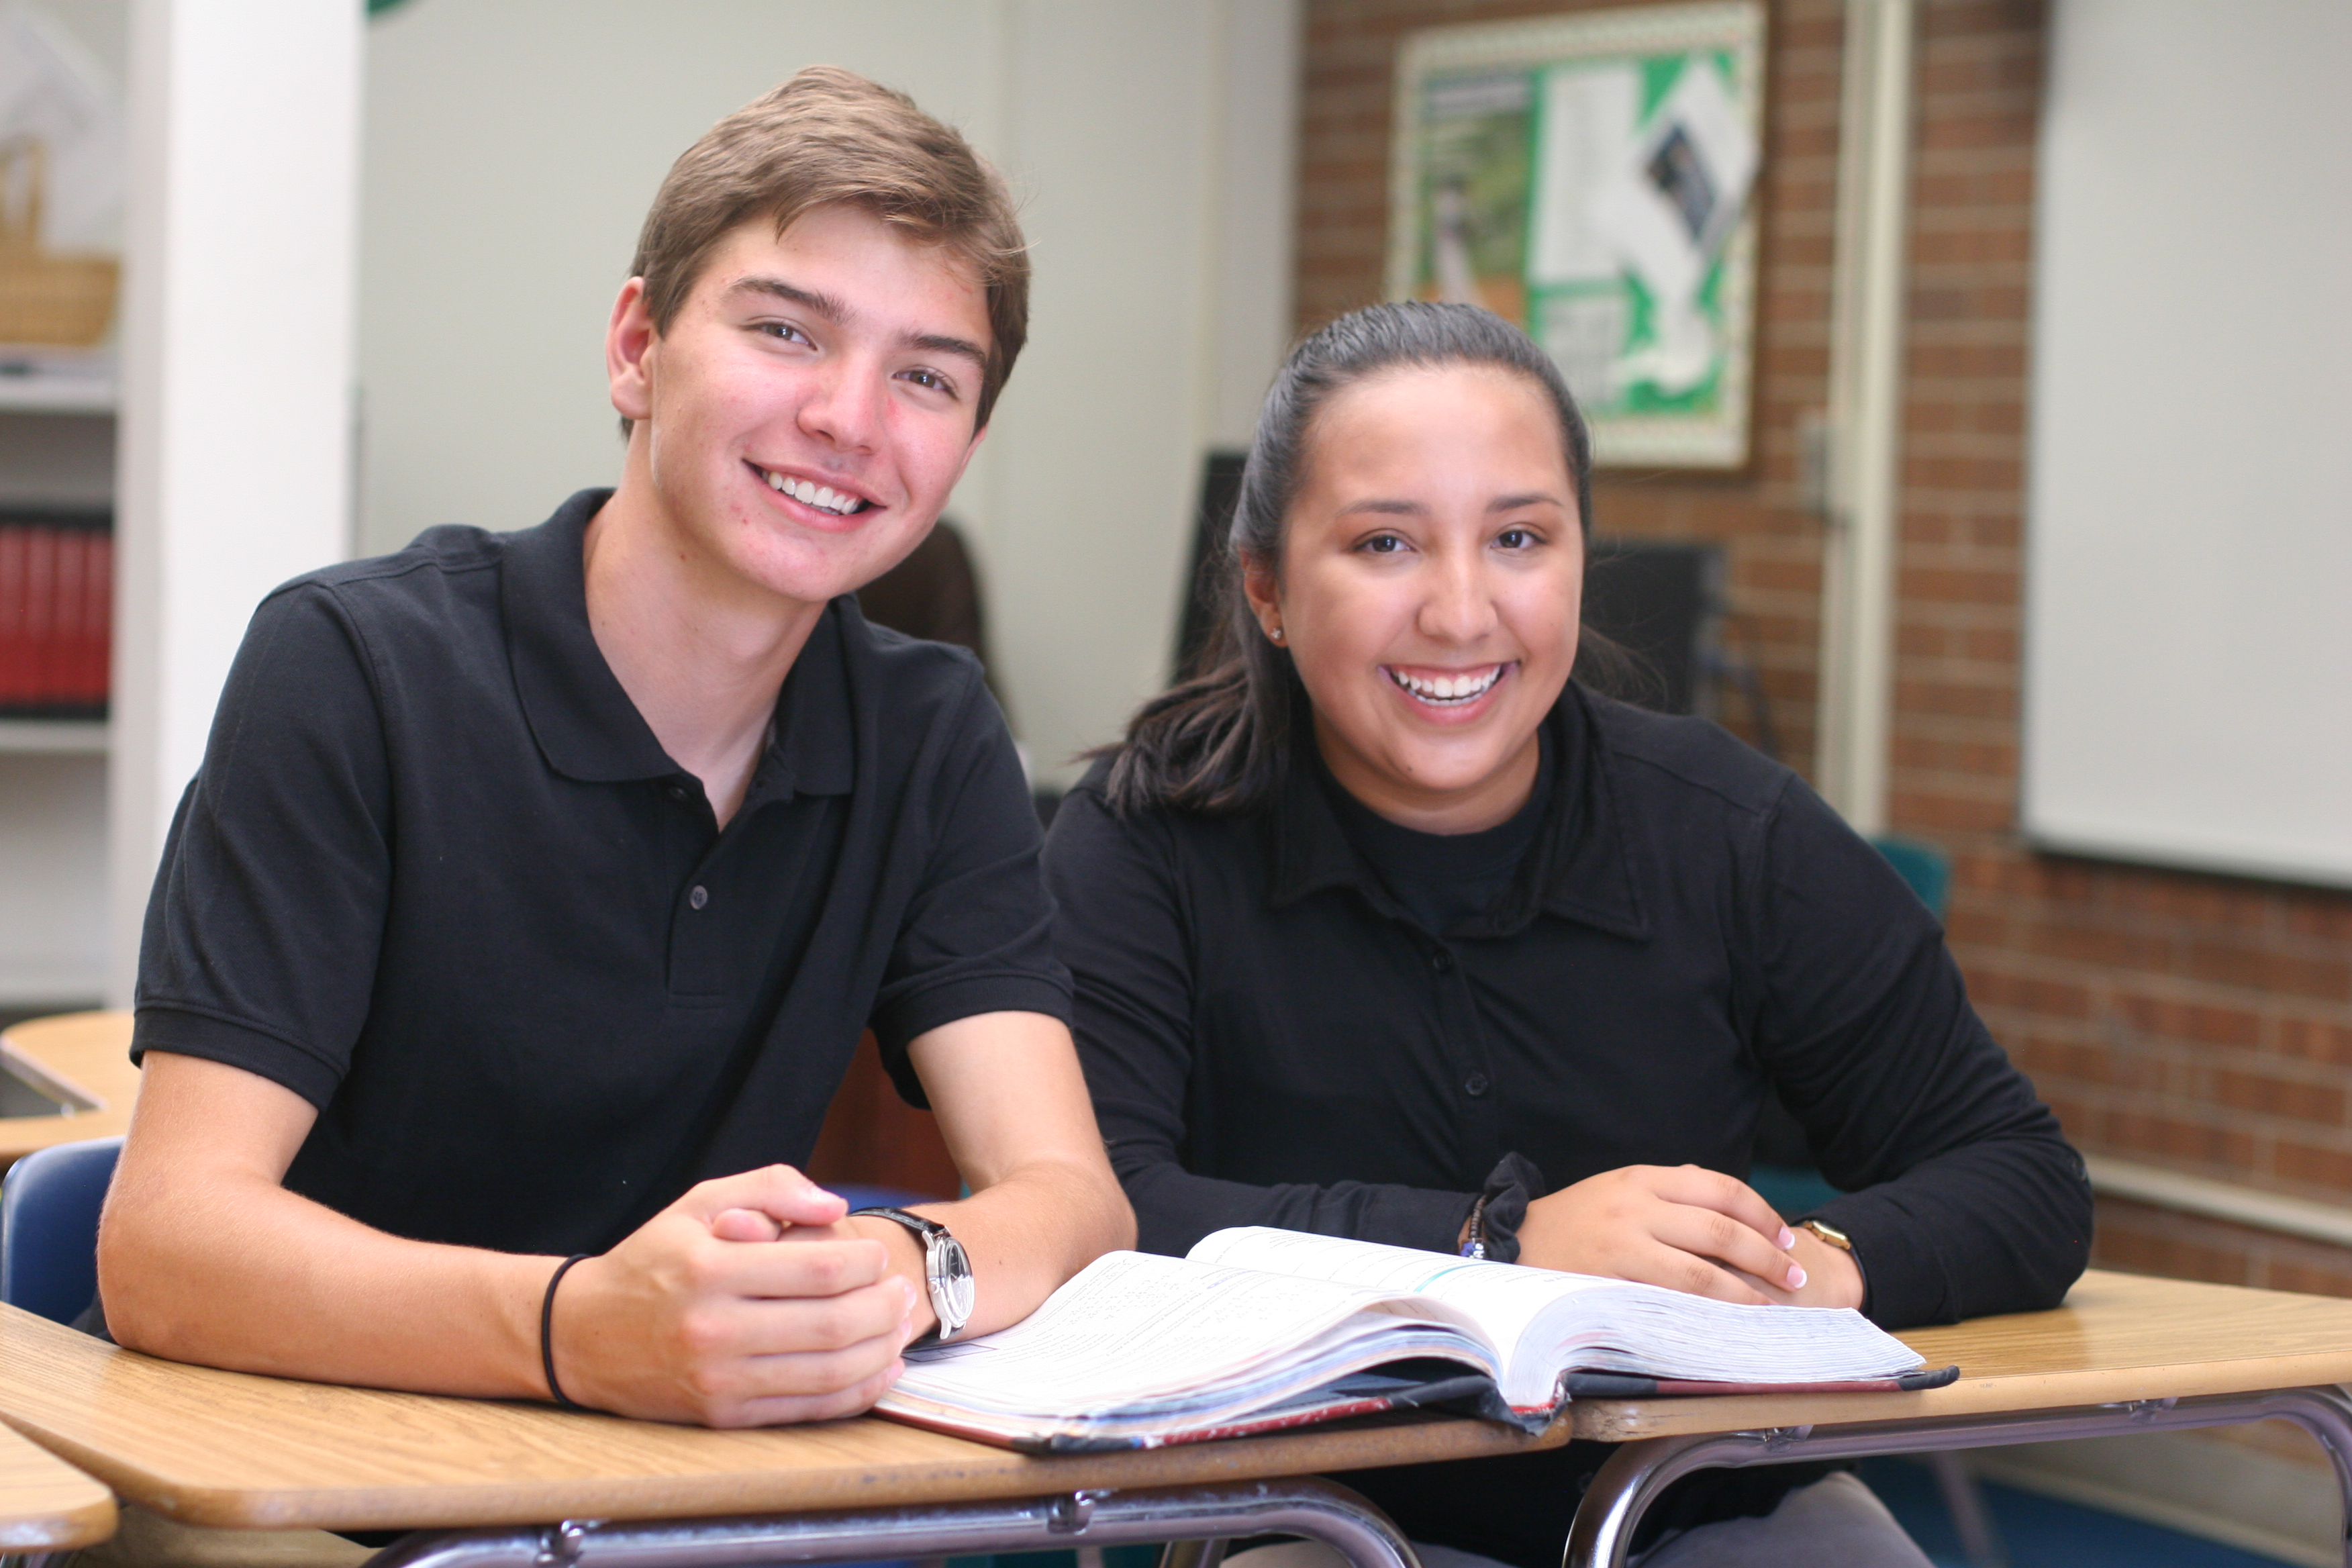 2 students posing at their desk